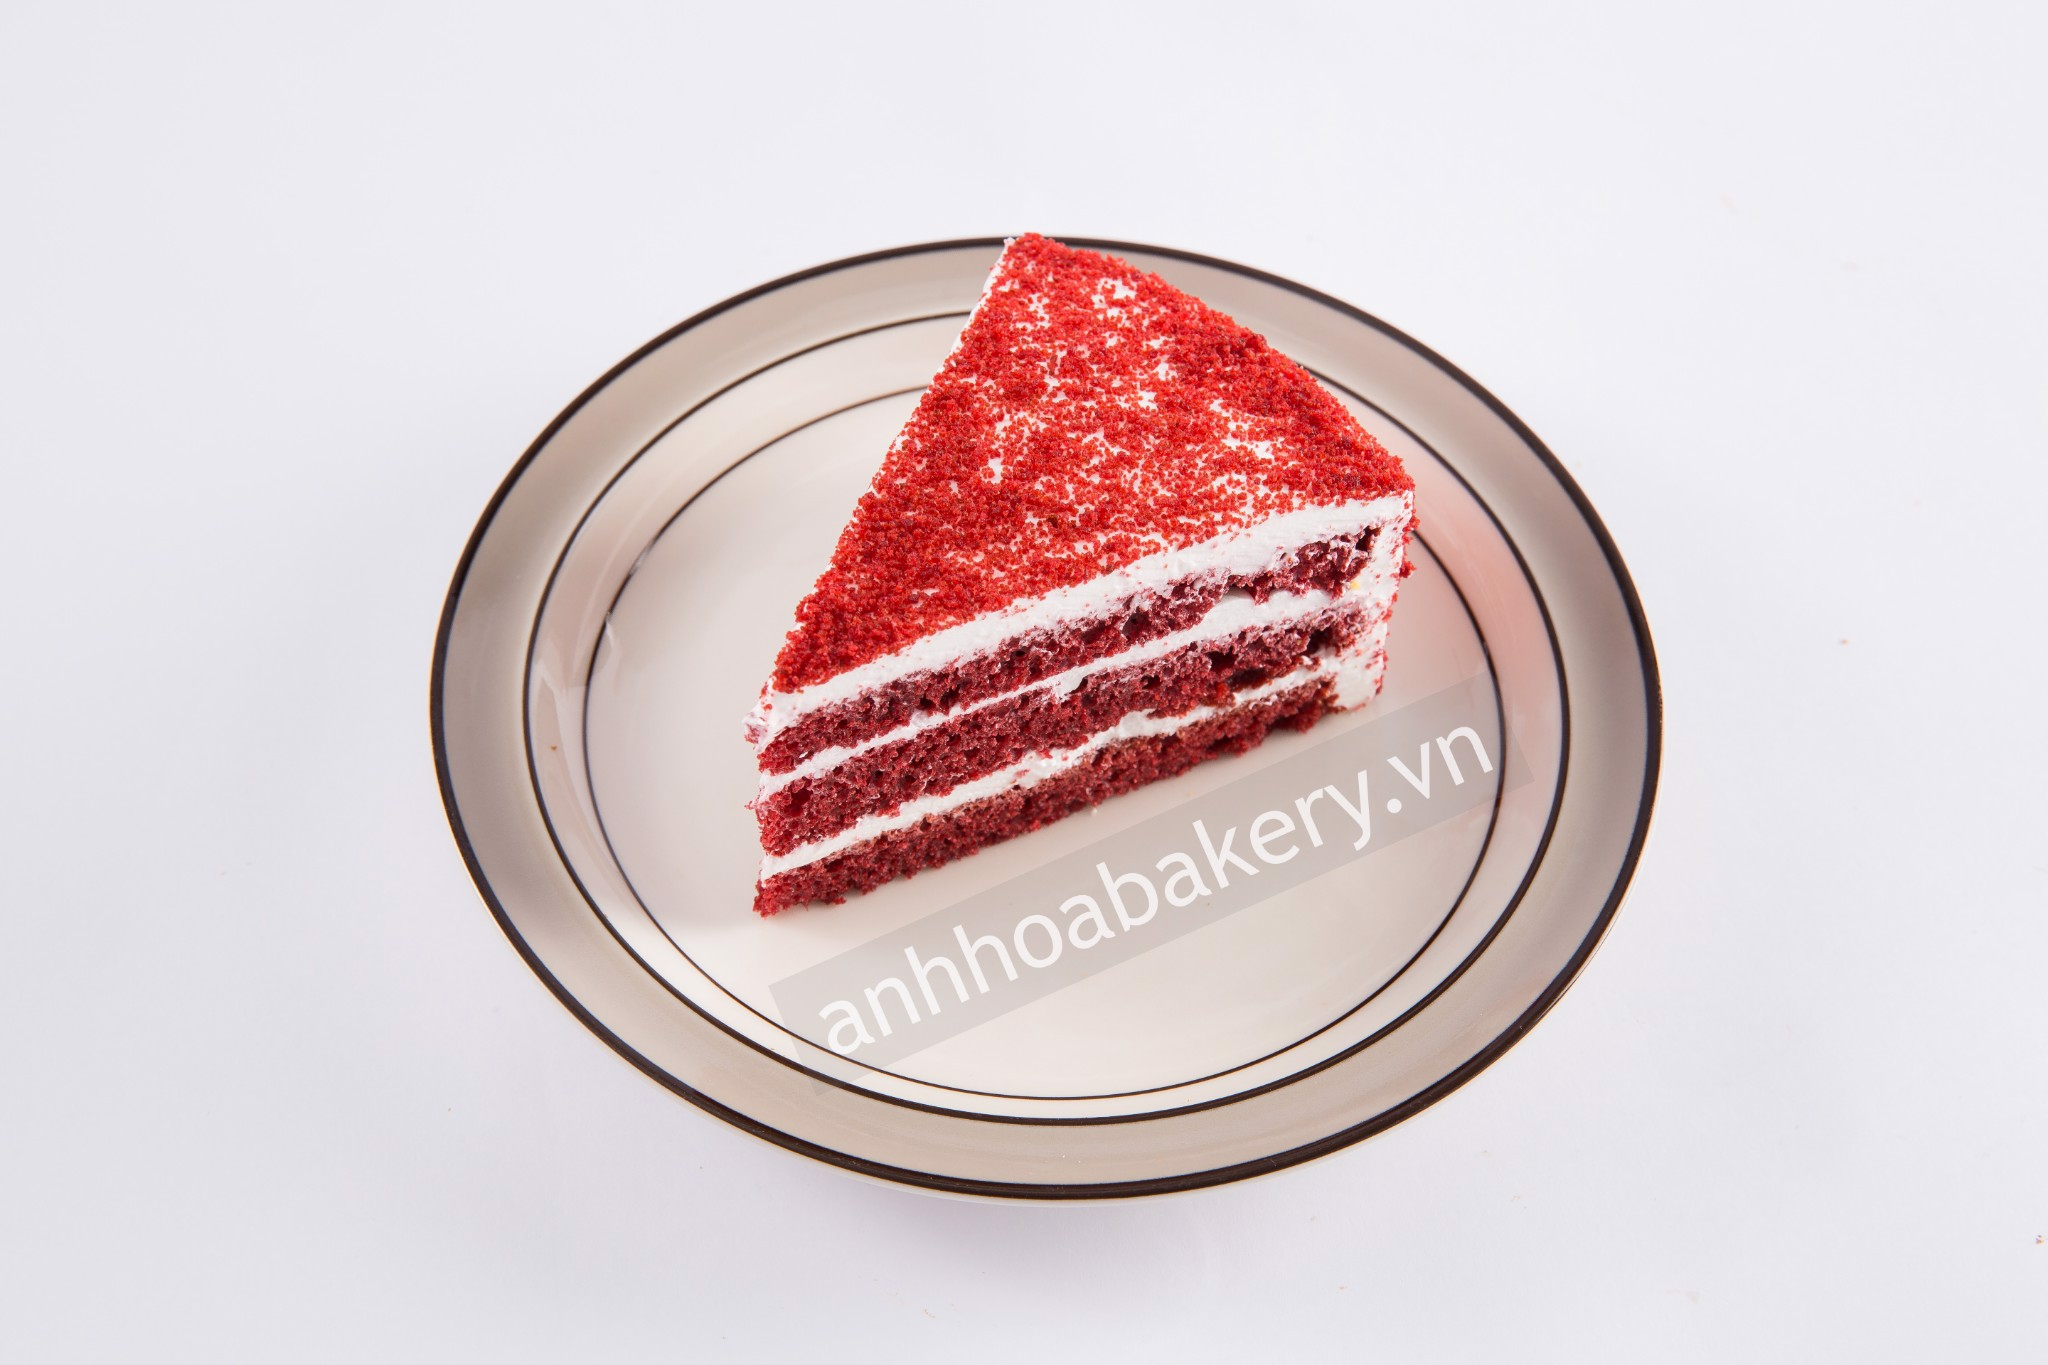 Red velvel cake piece